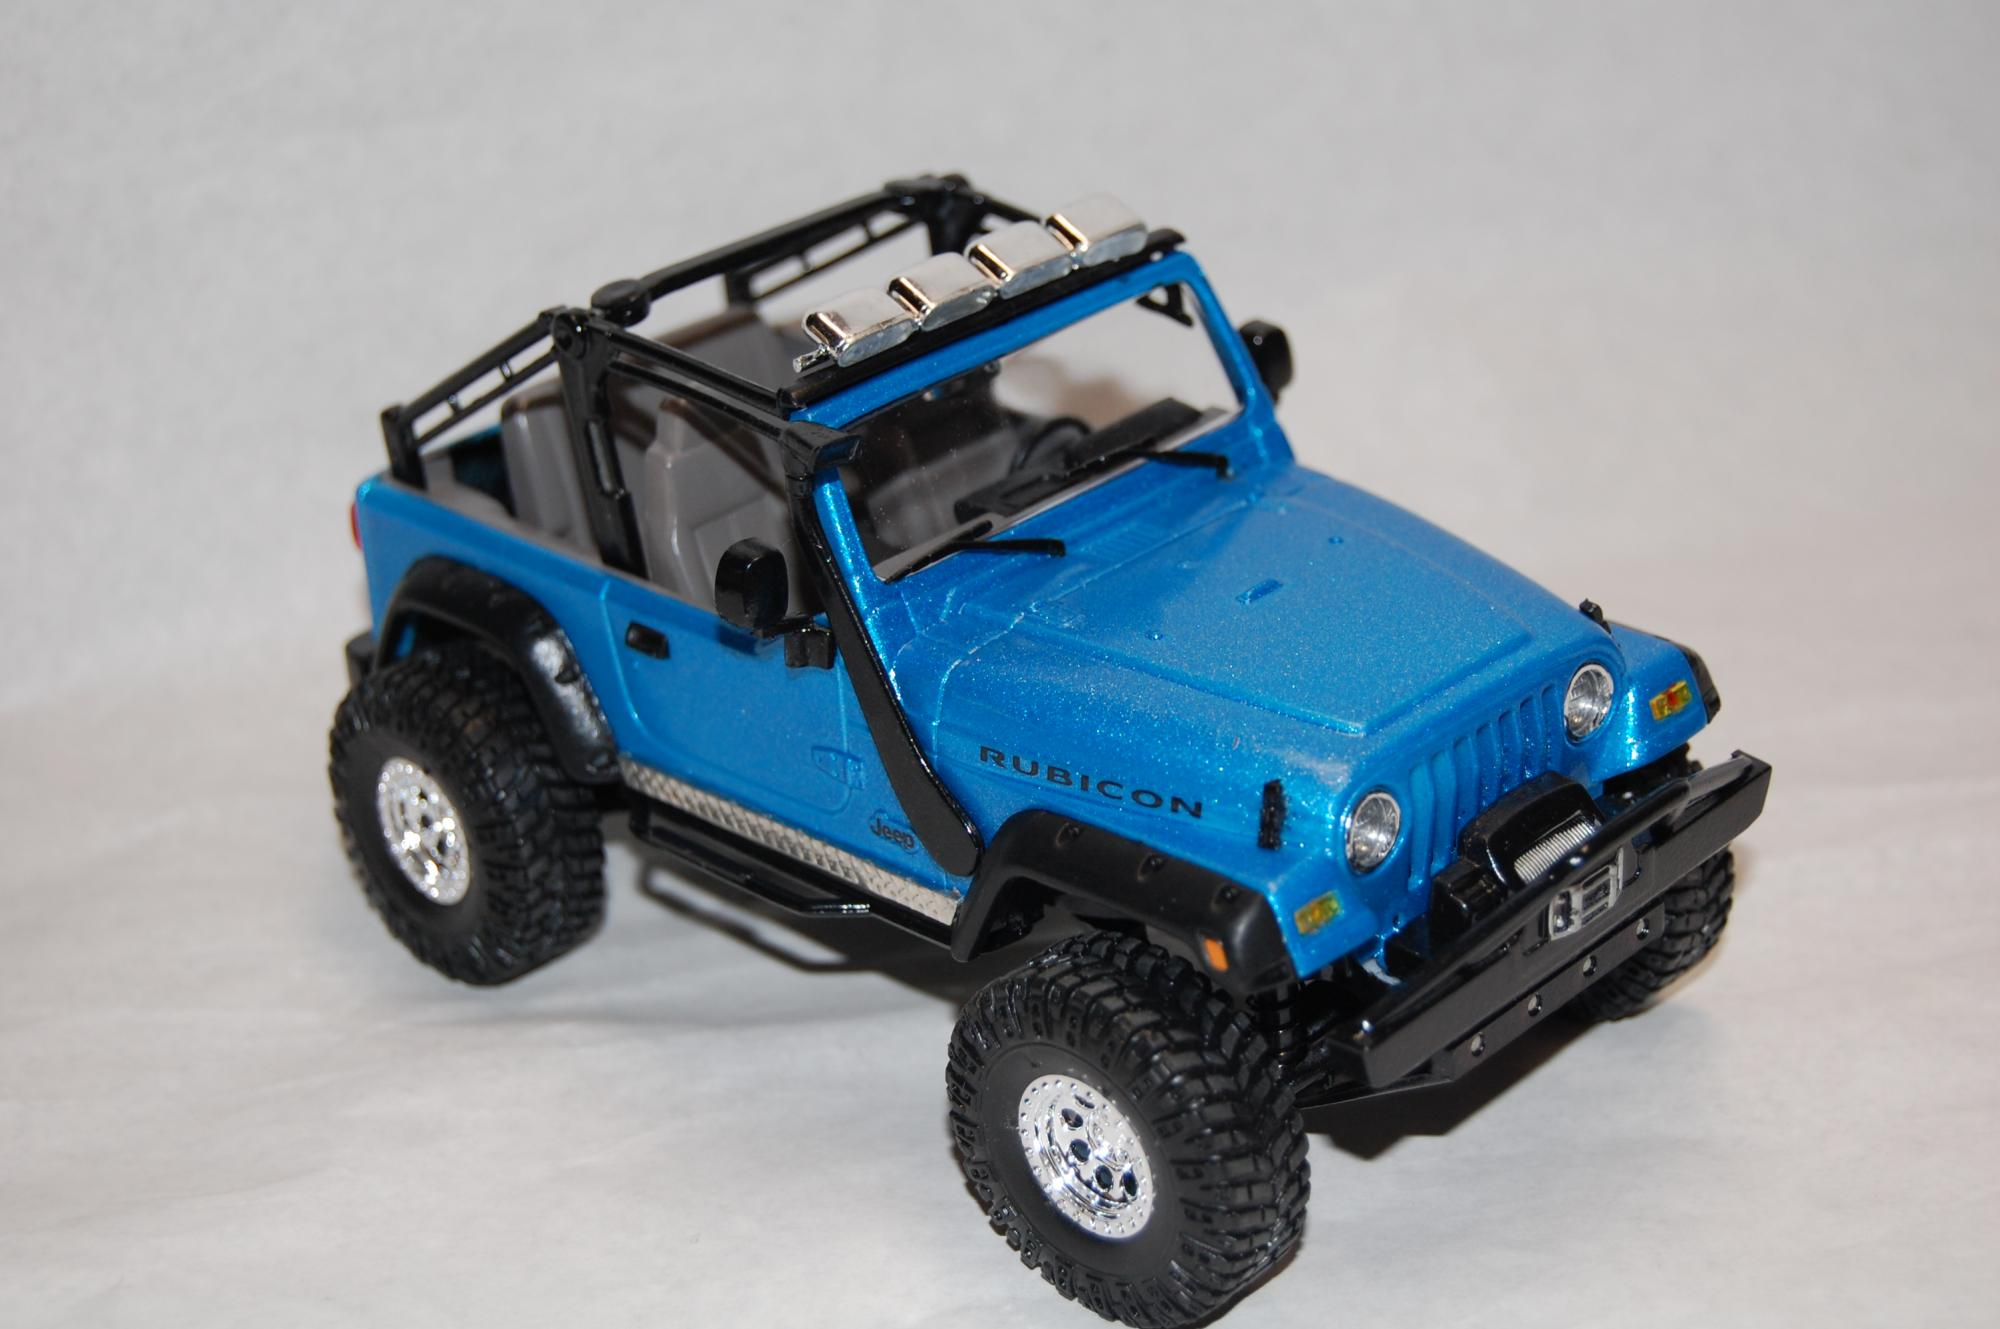 Revell Jeep Rubicon Pics Under Glass Pickups Vans